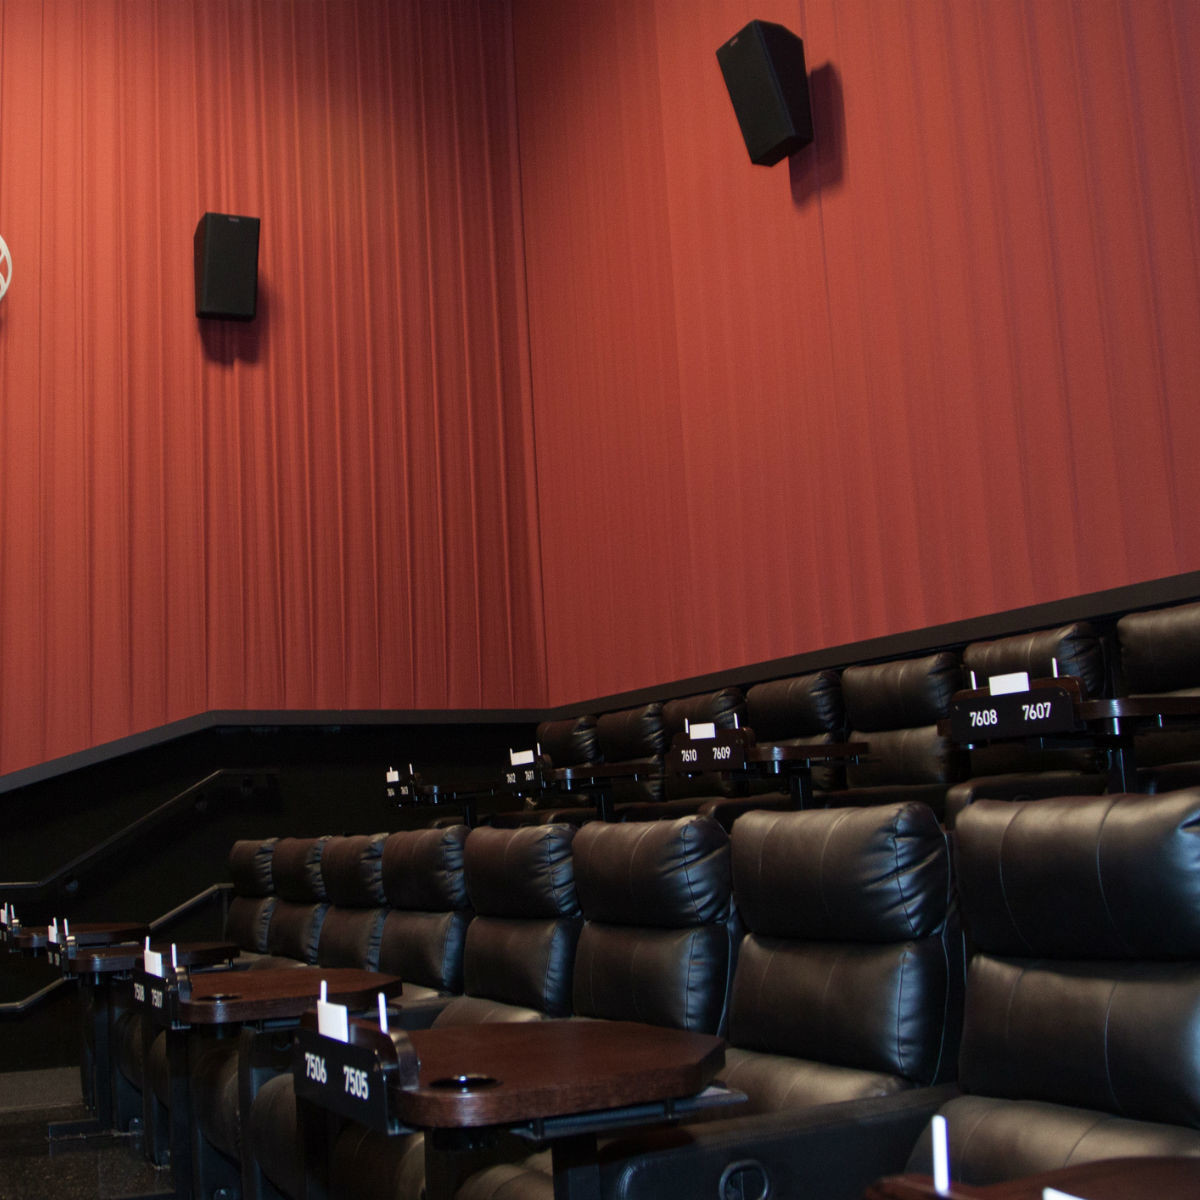 Seats at Alamo Drafthouse Dallas